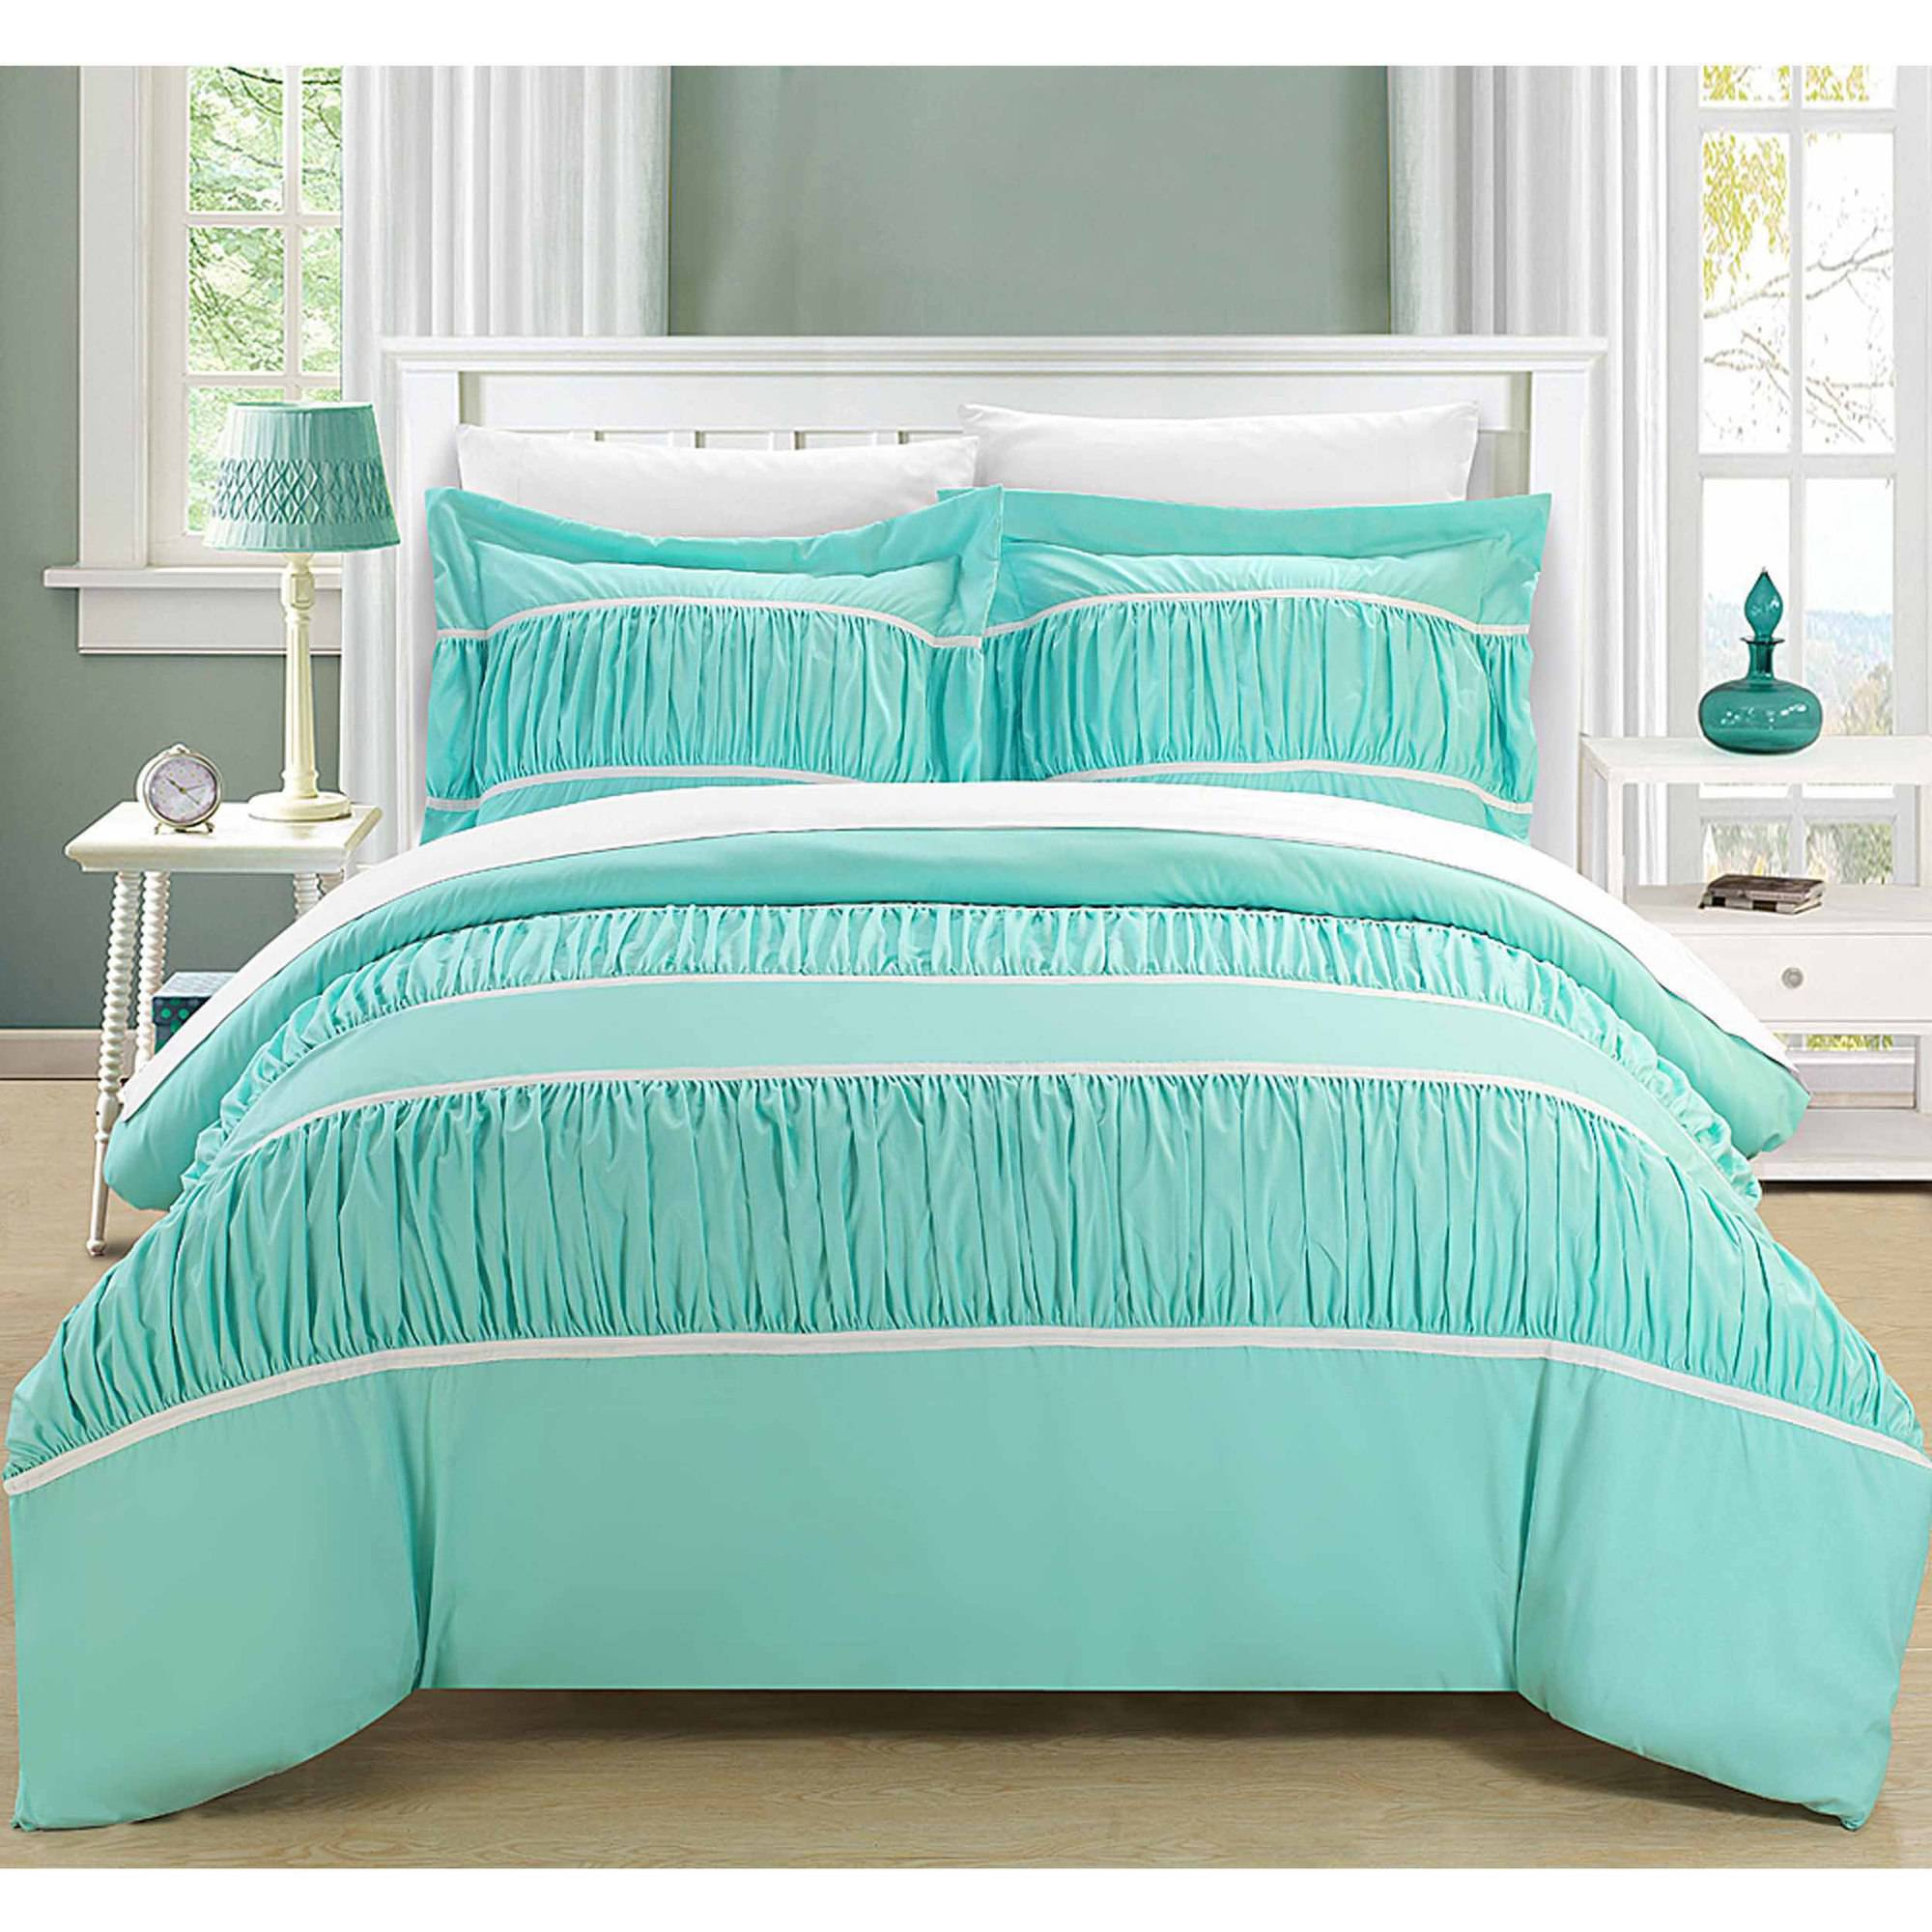 Elizabeth 7-Piece Bedding Ruffled Duvet Cover Set